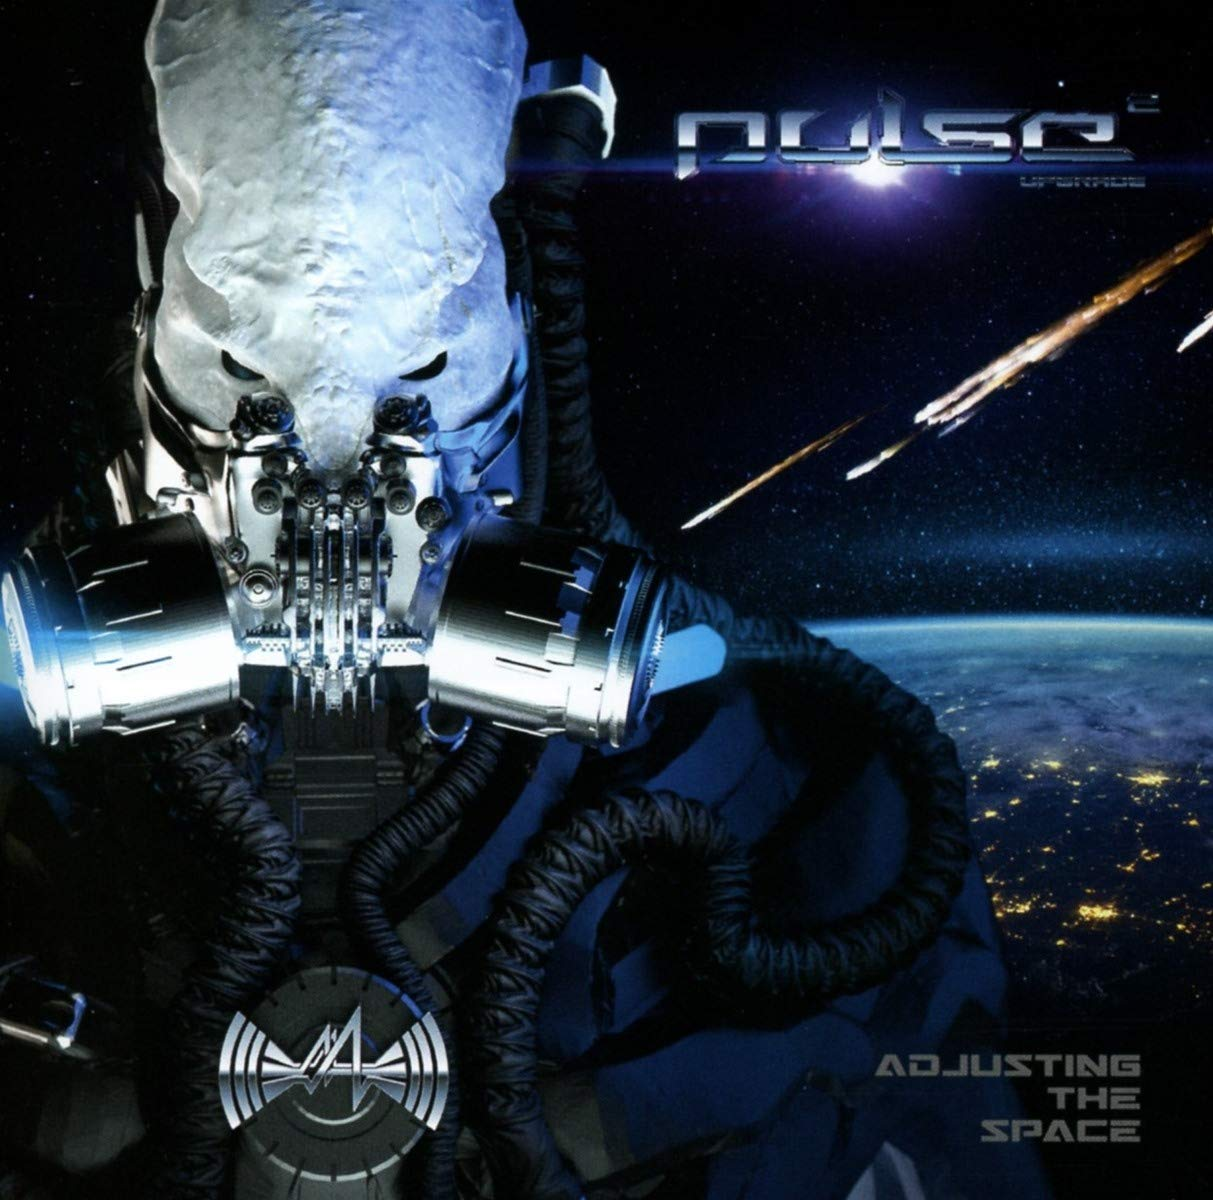 Pulse - Adjusting The Space (2020) [FLAC] Download